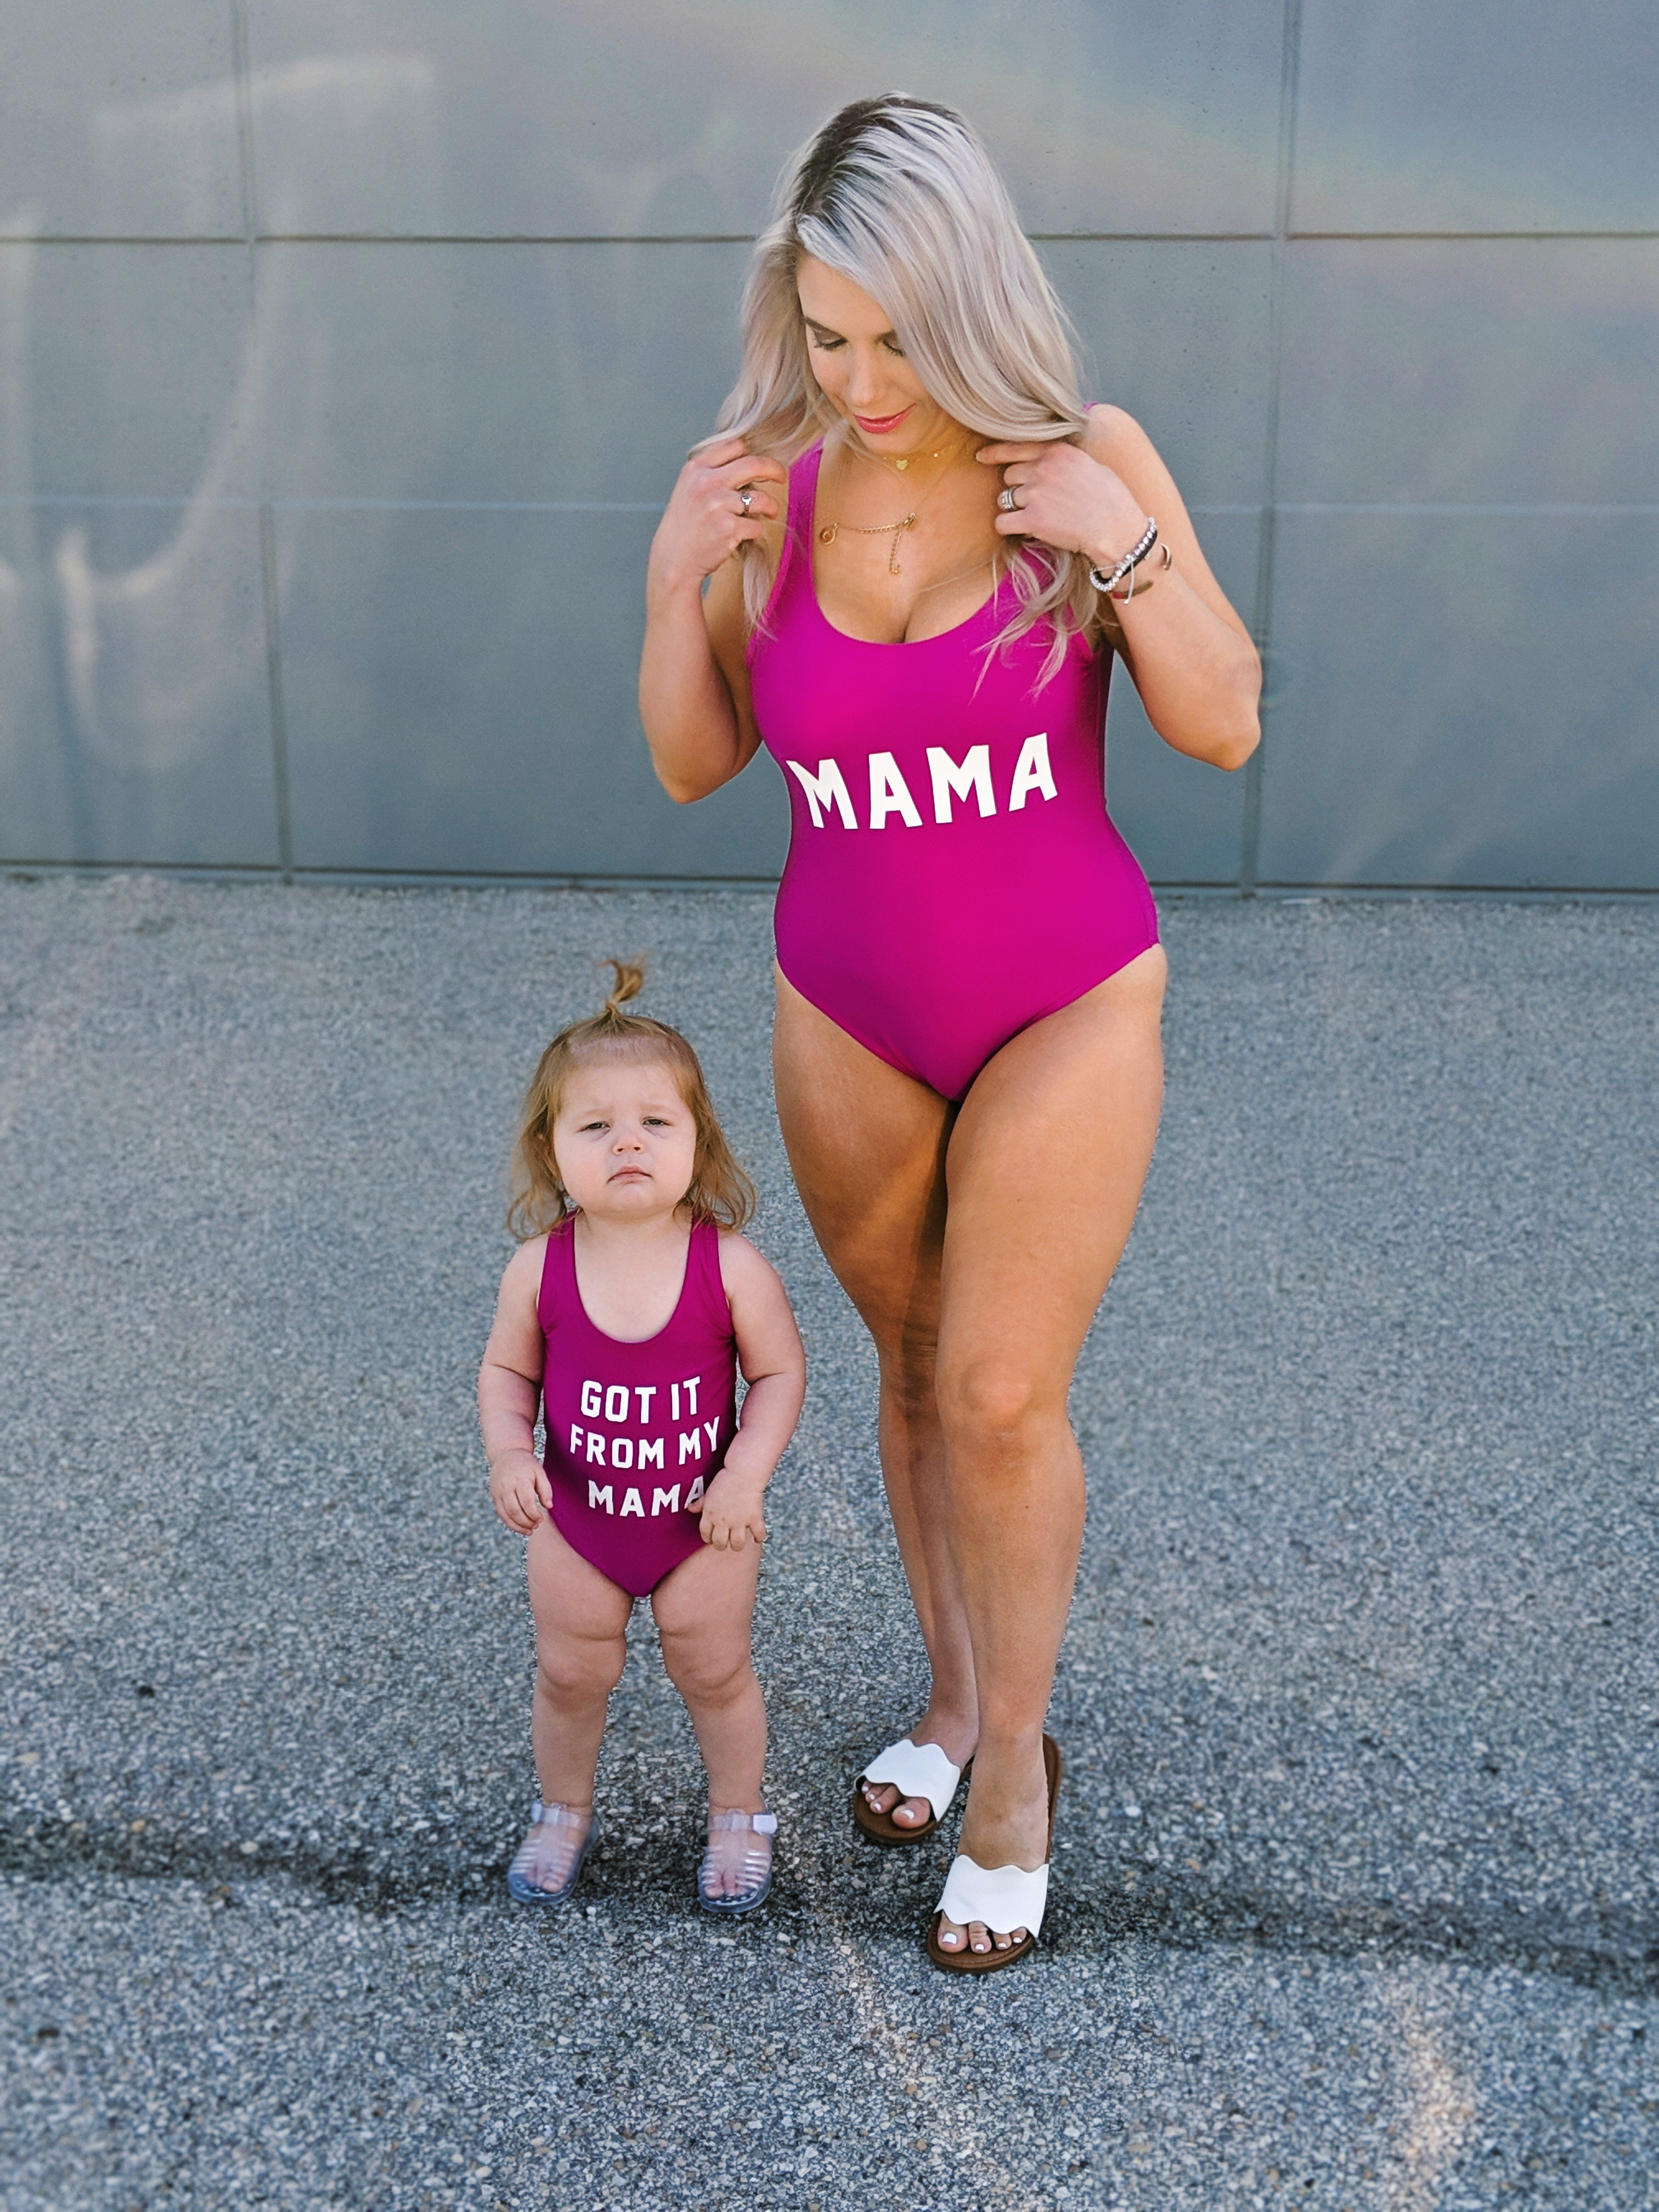 Finally a blogger showing some cheap mommy and me swimsuits! I can't afford those expensive suits and these mommy and me swimsuits are just as cute. Mama and Got it From My Mama swimsuits available in pink and other colors. There's also a Papa version for dads! The cutest mommy and me outfit ideas! #mommyandme #mommyandmeswimsuits #ltkfamily